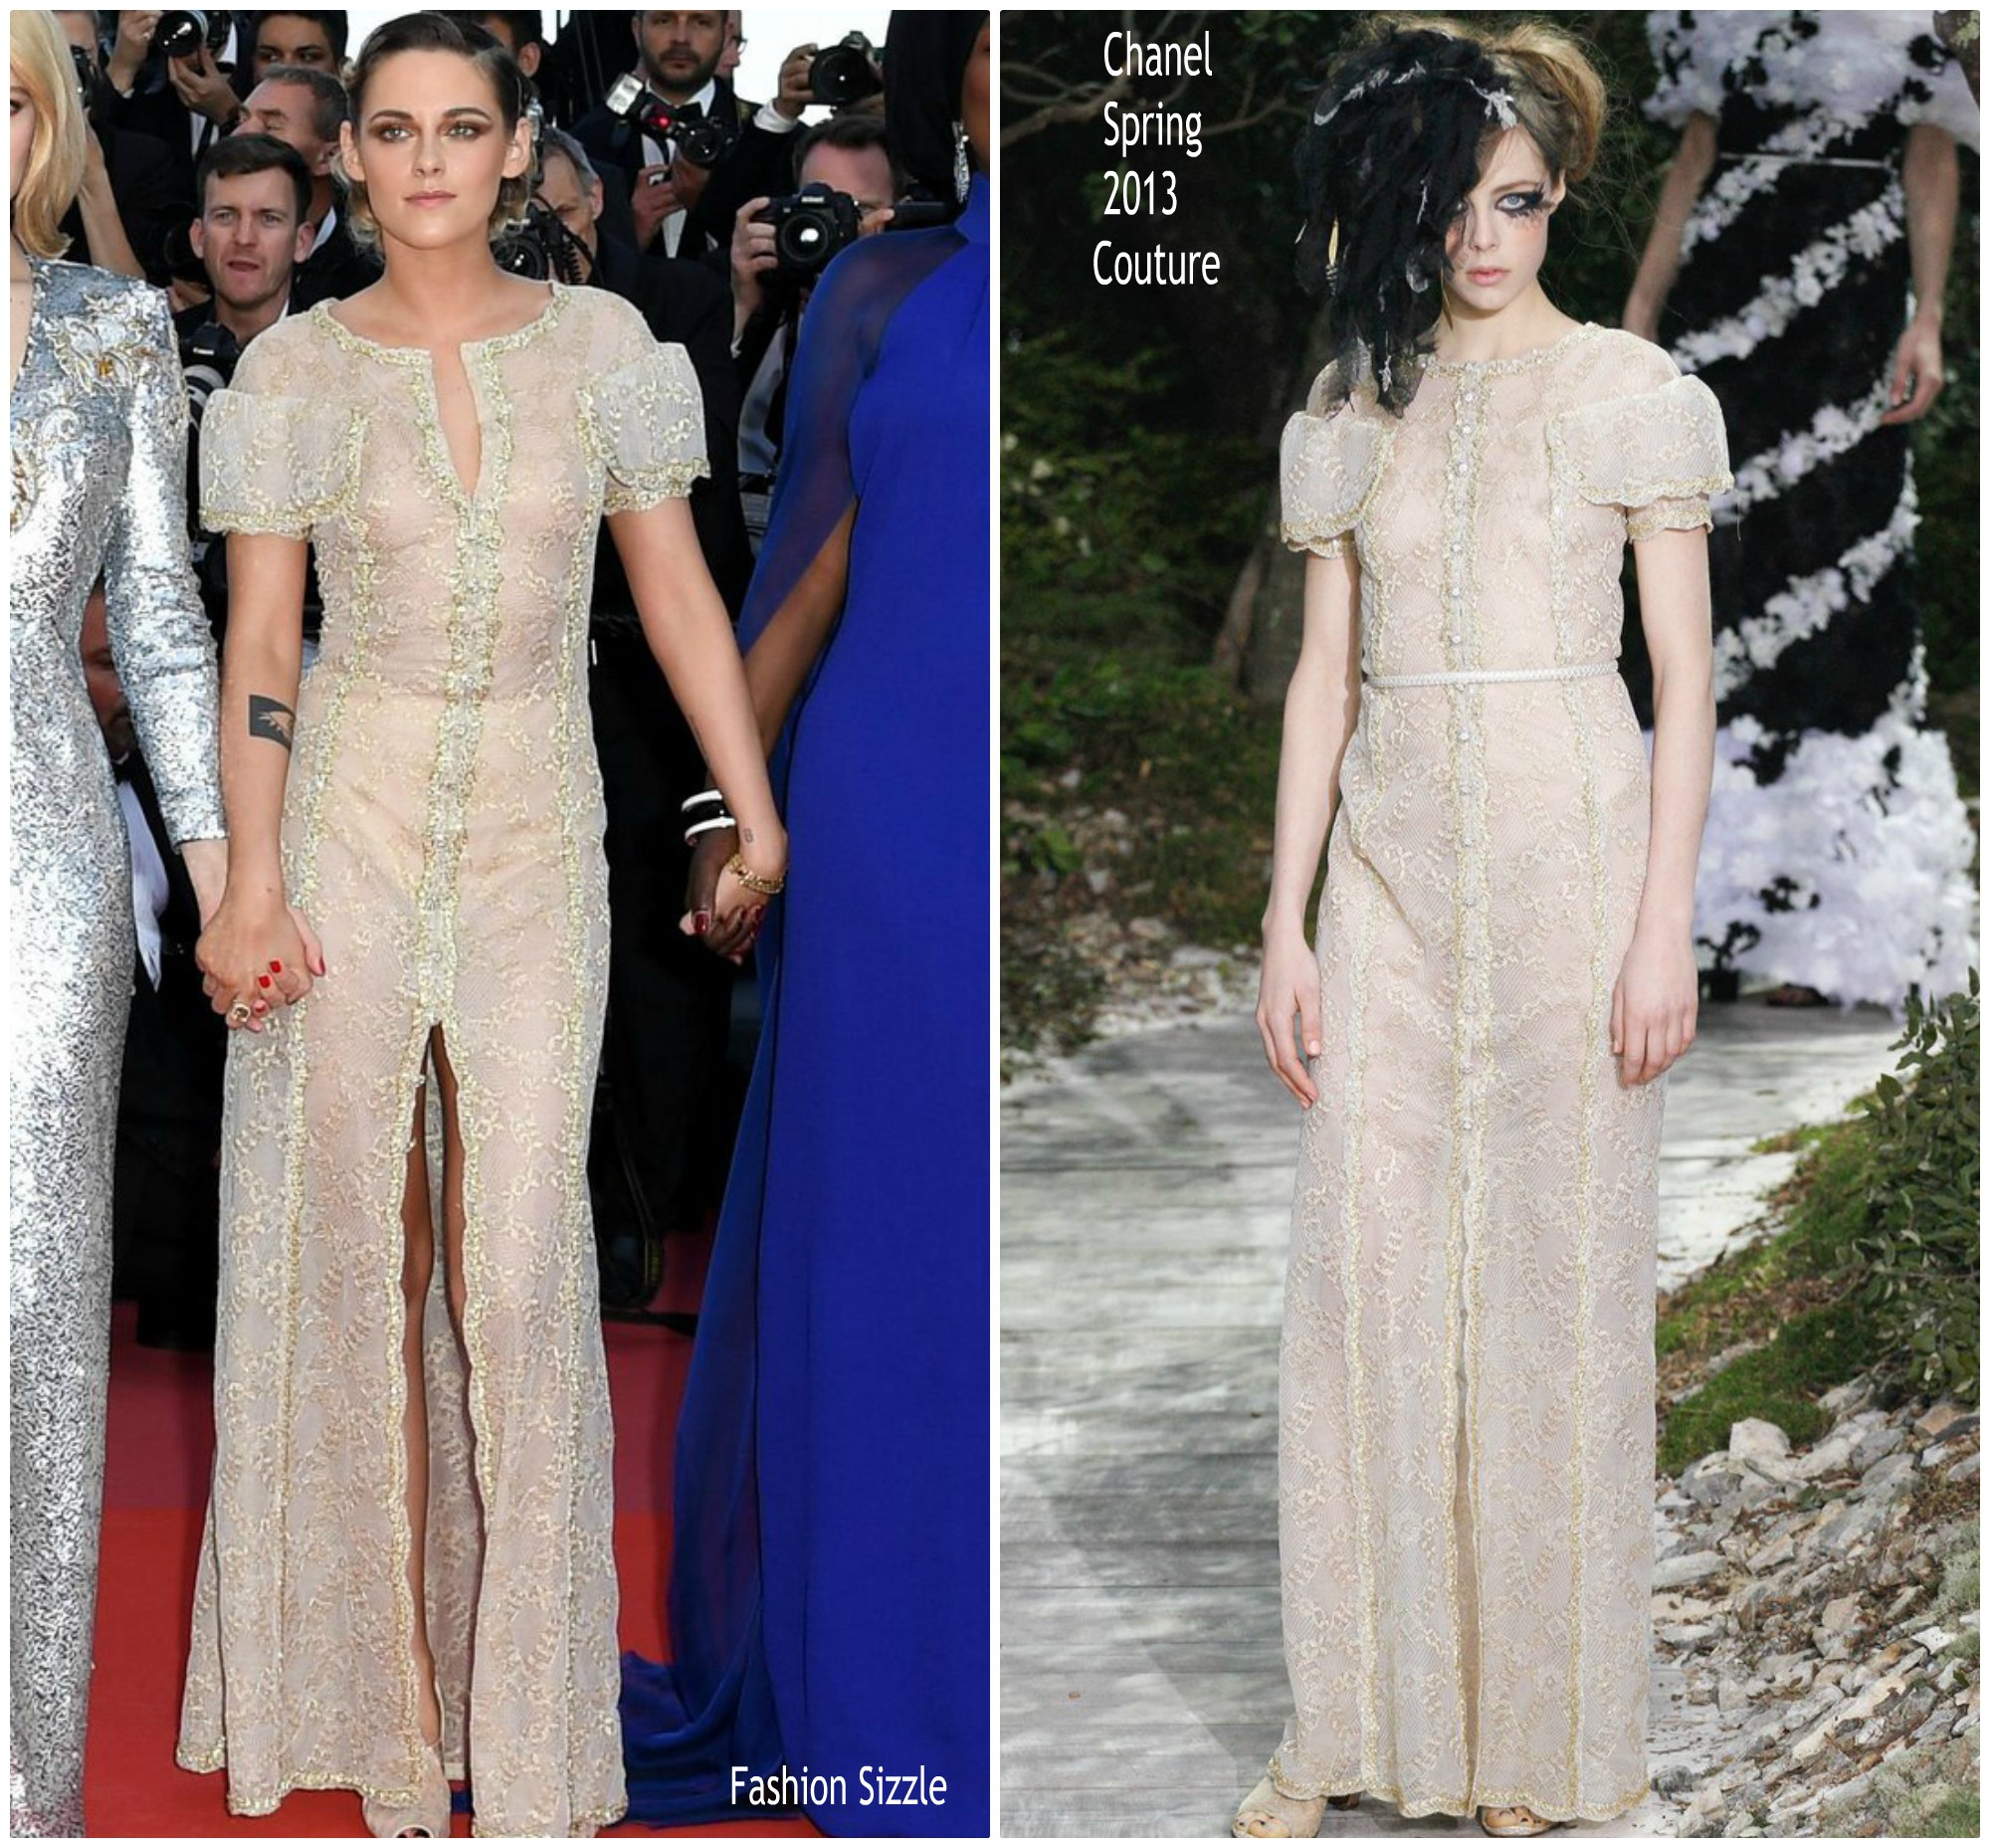 kristen-stewart-in-chanel-haute-couture-the-man-who-killed–don-quixote-cannes-film-festival-premiere-closing-ceremony